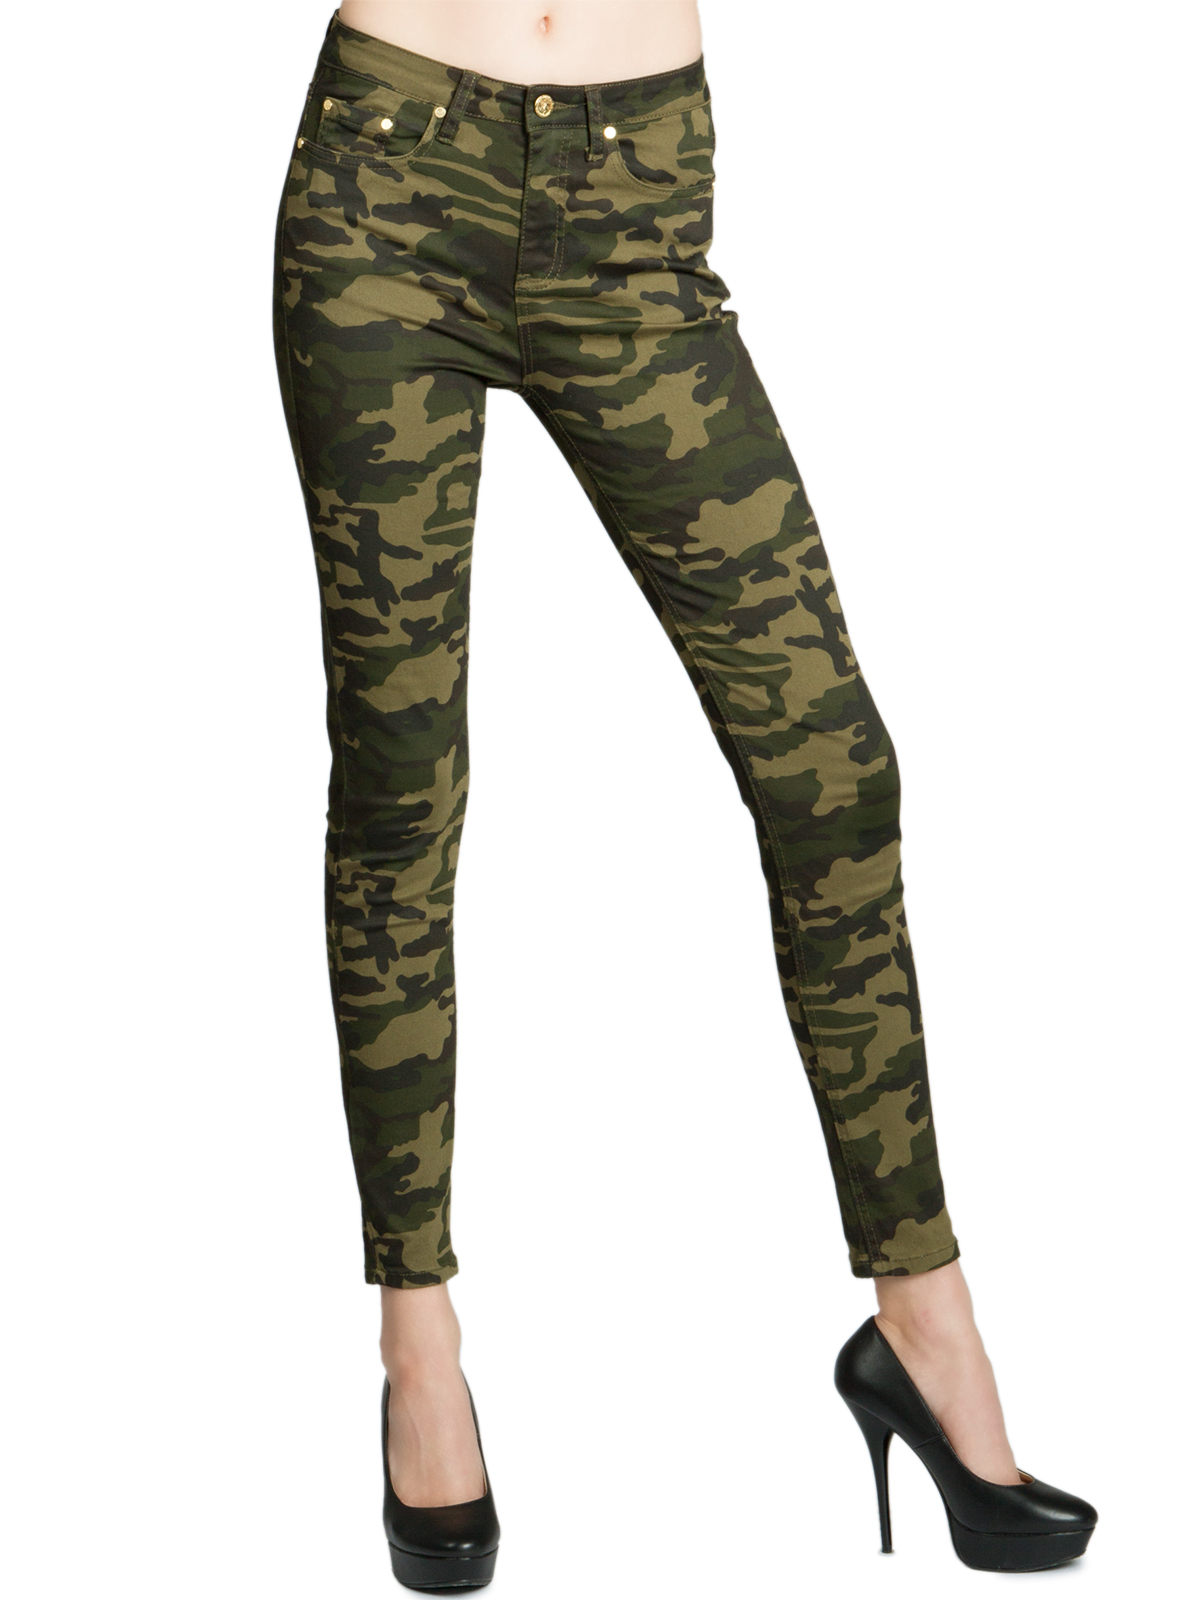 Damen Army Military Cargo Bundeswehr Jogg Jeans Hose high